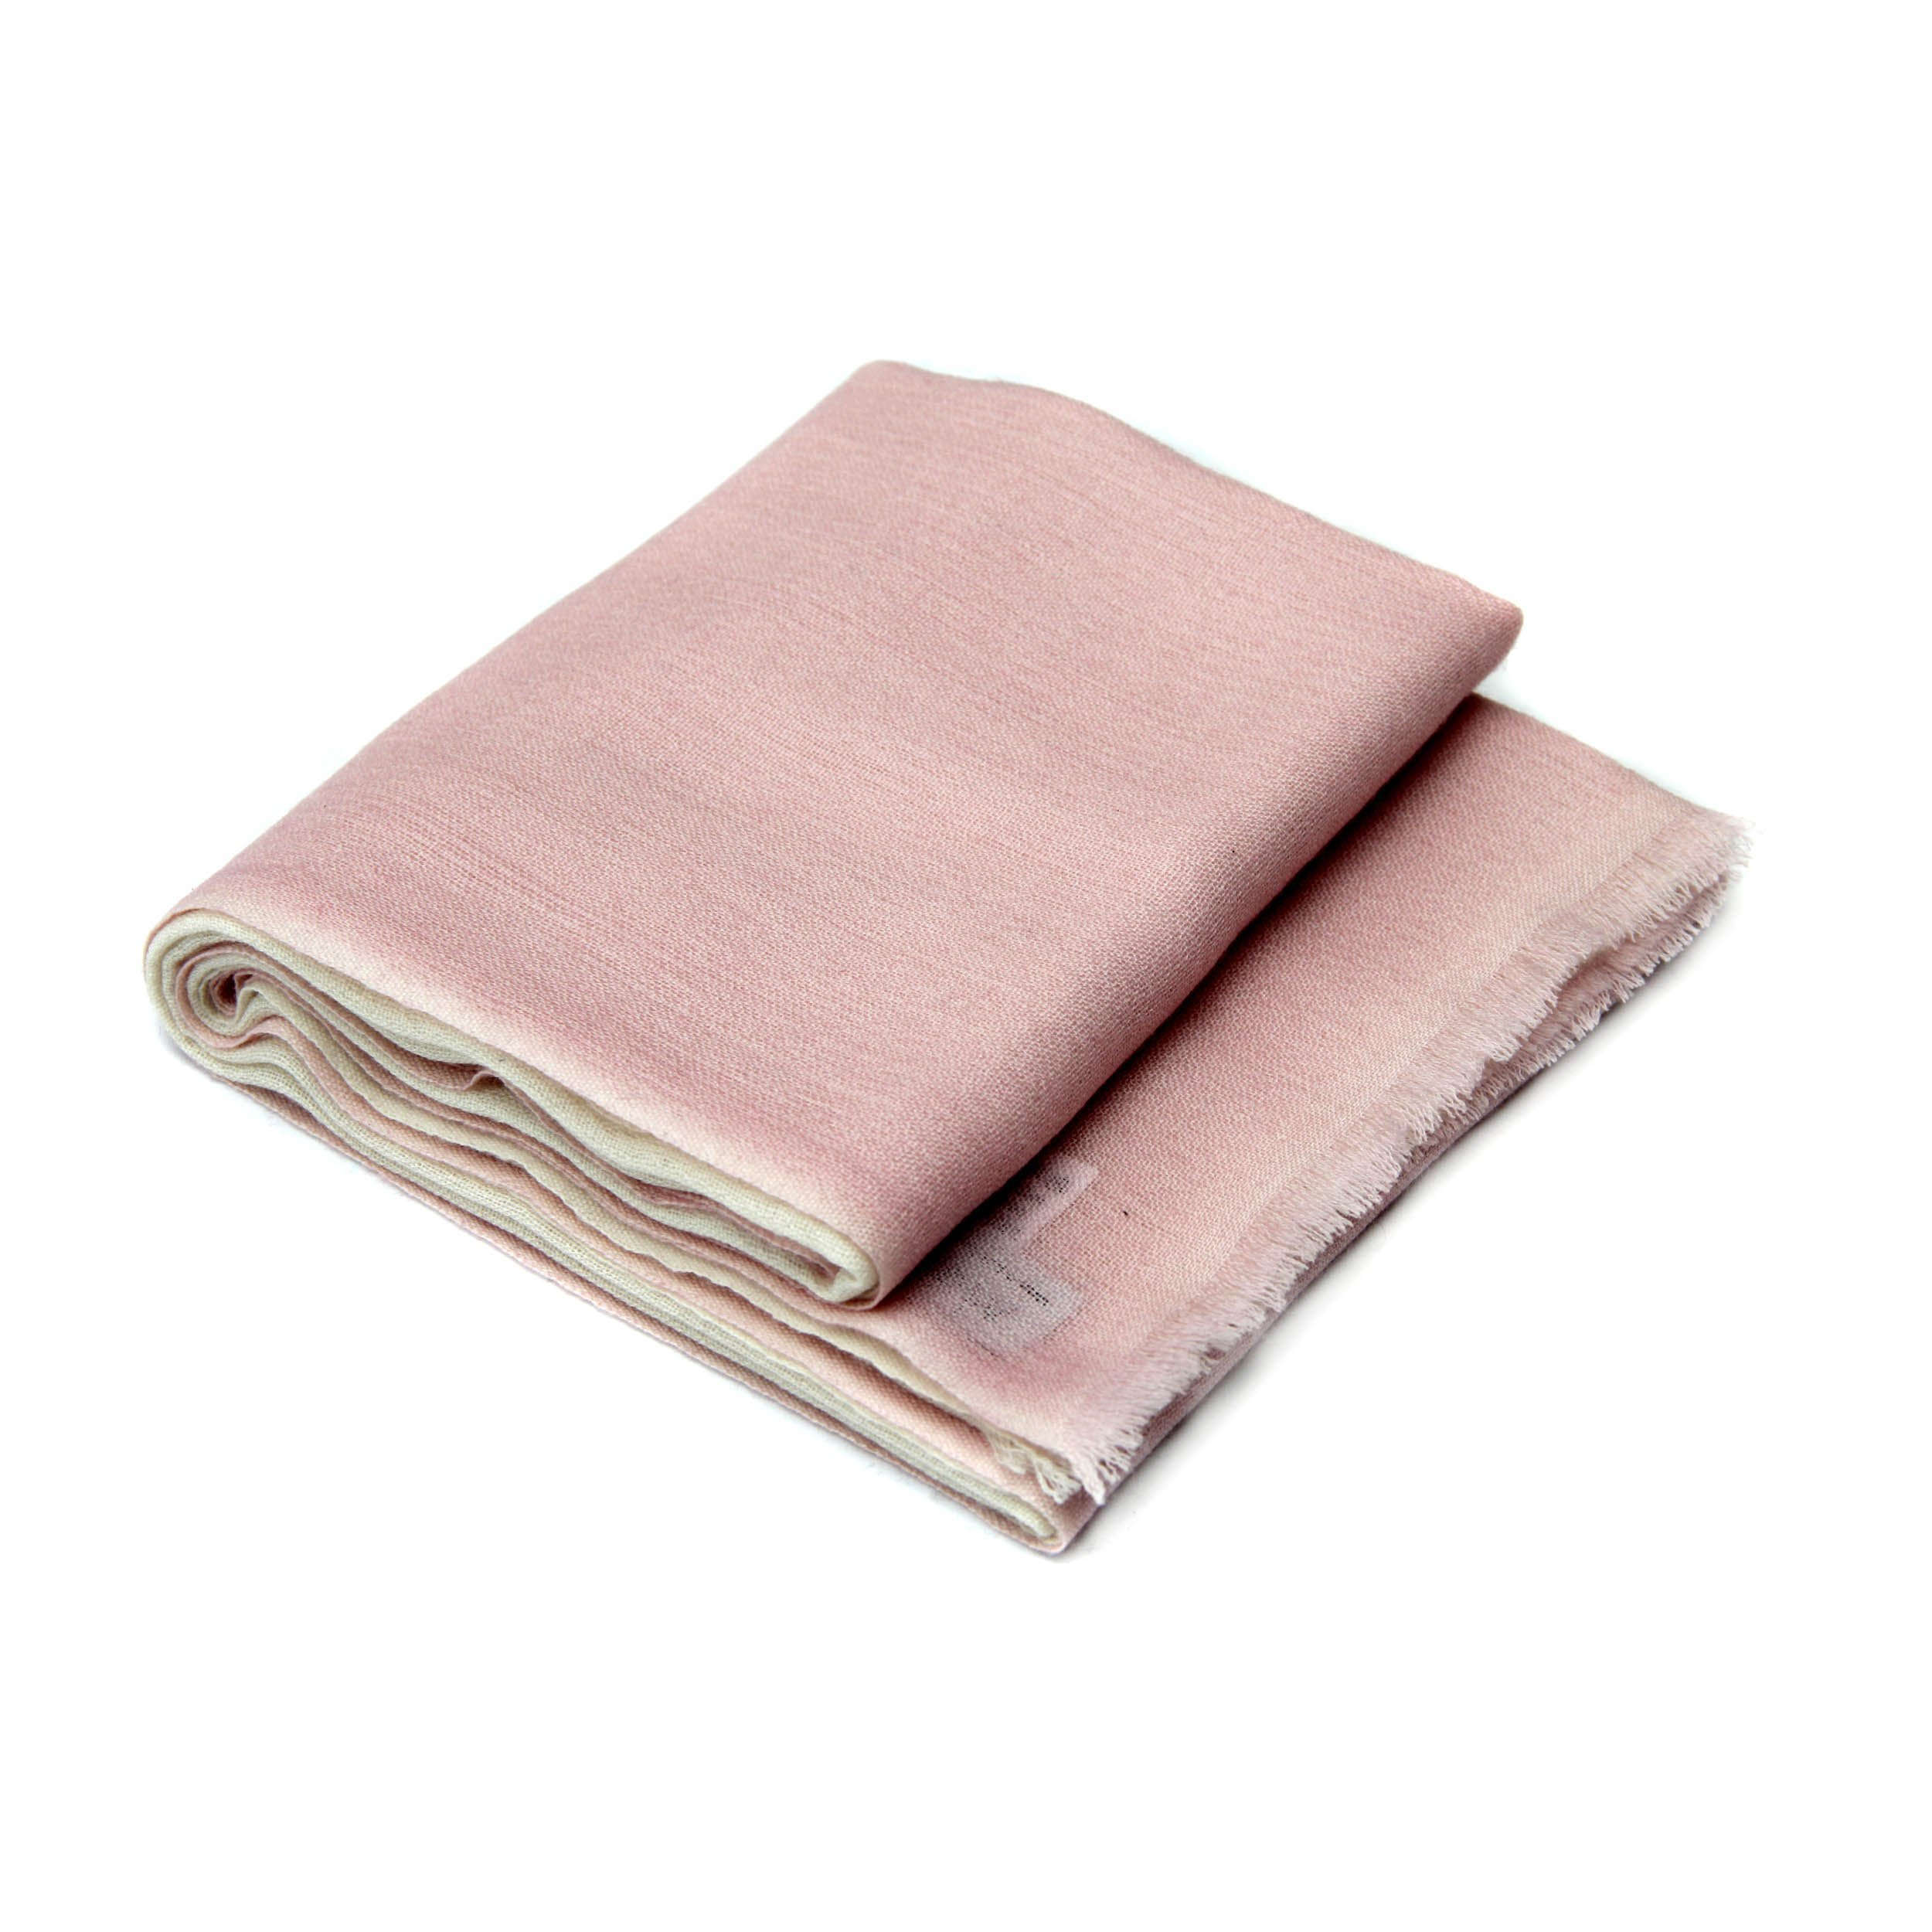 100% Cashmere Ombre Stole, (60/2 Mongolian Yarn Composition) Pink and Beige Ombre Lightweight Stole © Moksha Cashmere